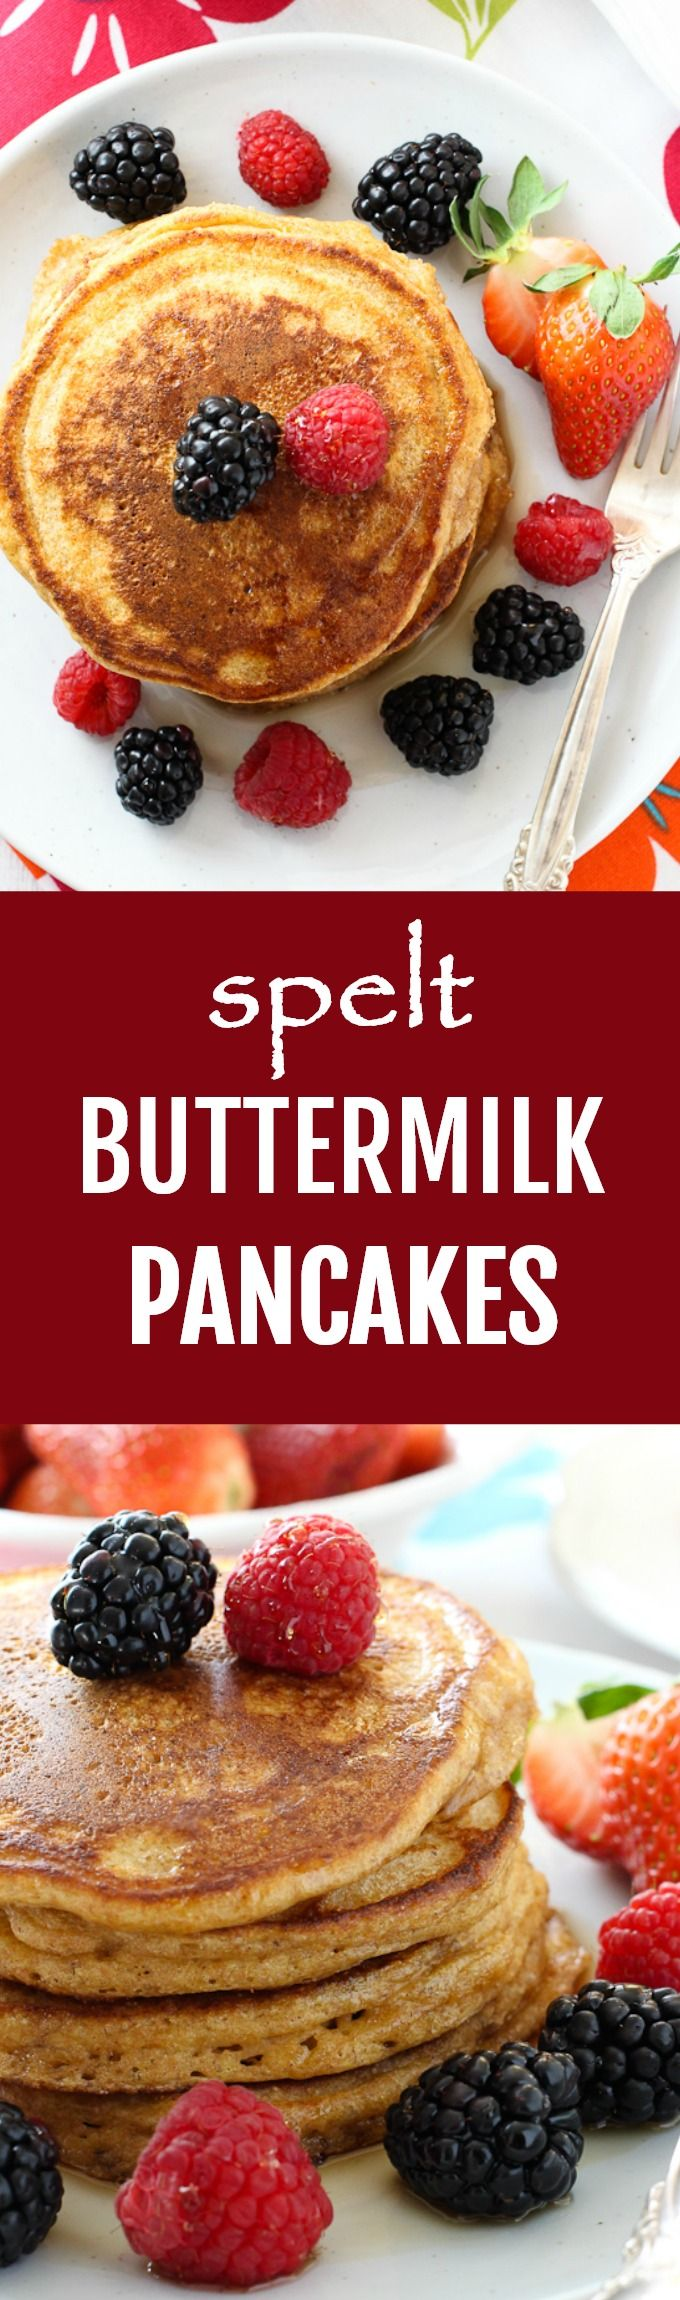 A simple recipe for buttermilk spelt pancakes. These pancakes taste absolutely delicious served with some maple syrup and berries. Add a tablespoon of your favorite nut butter to keep the meal balanced.